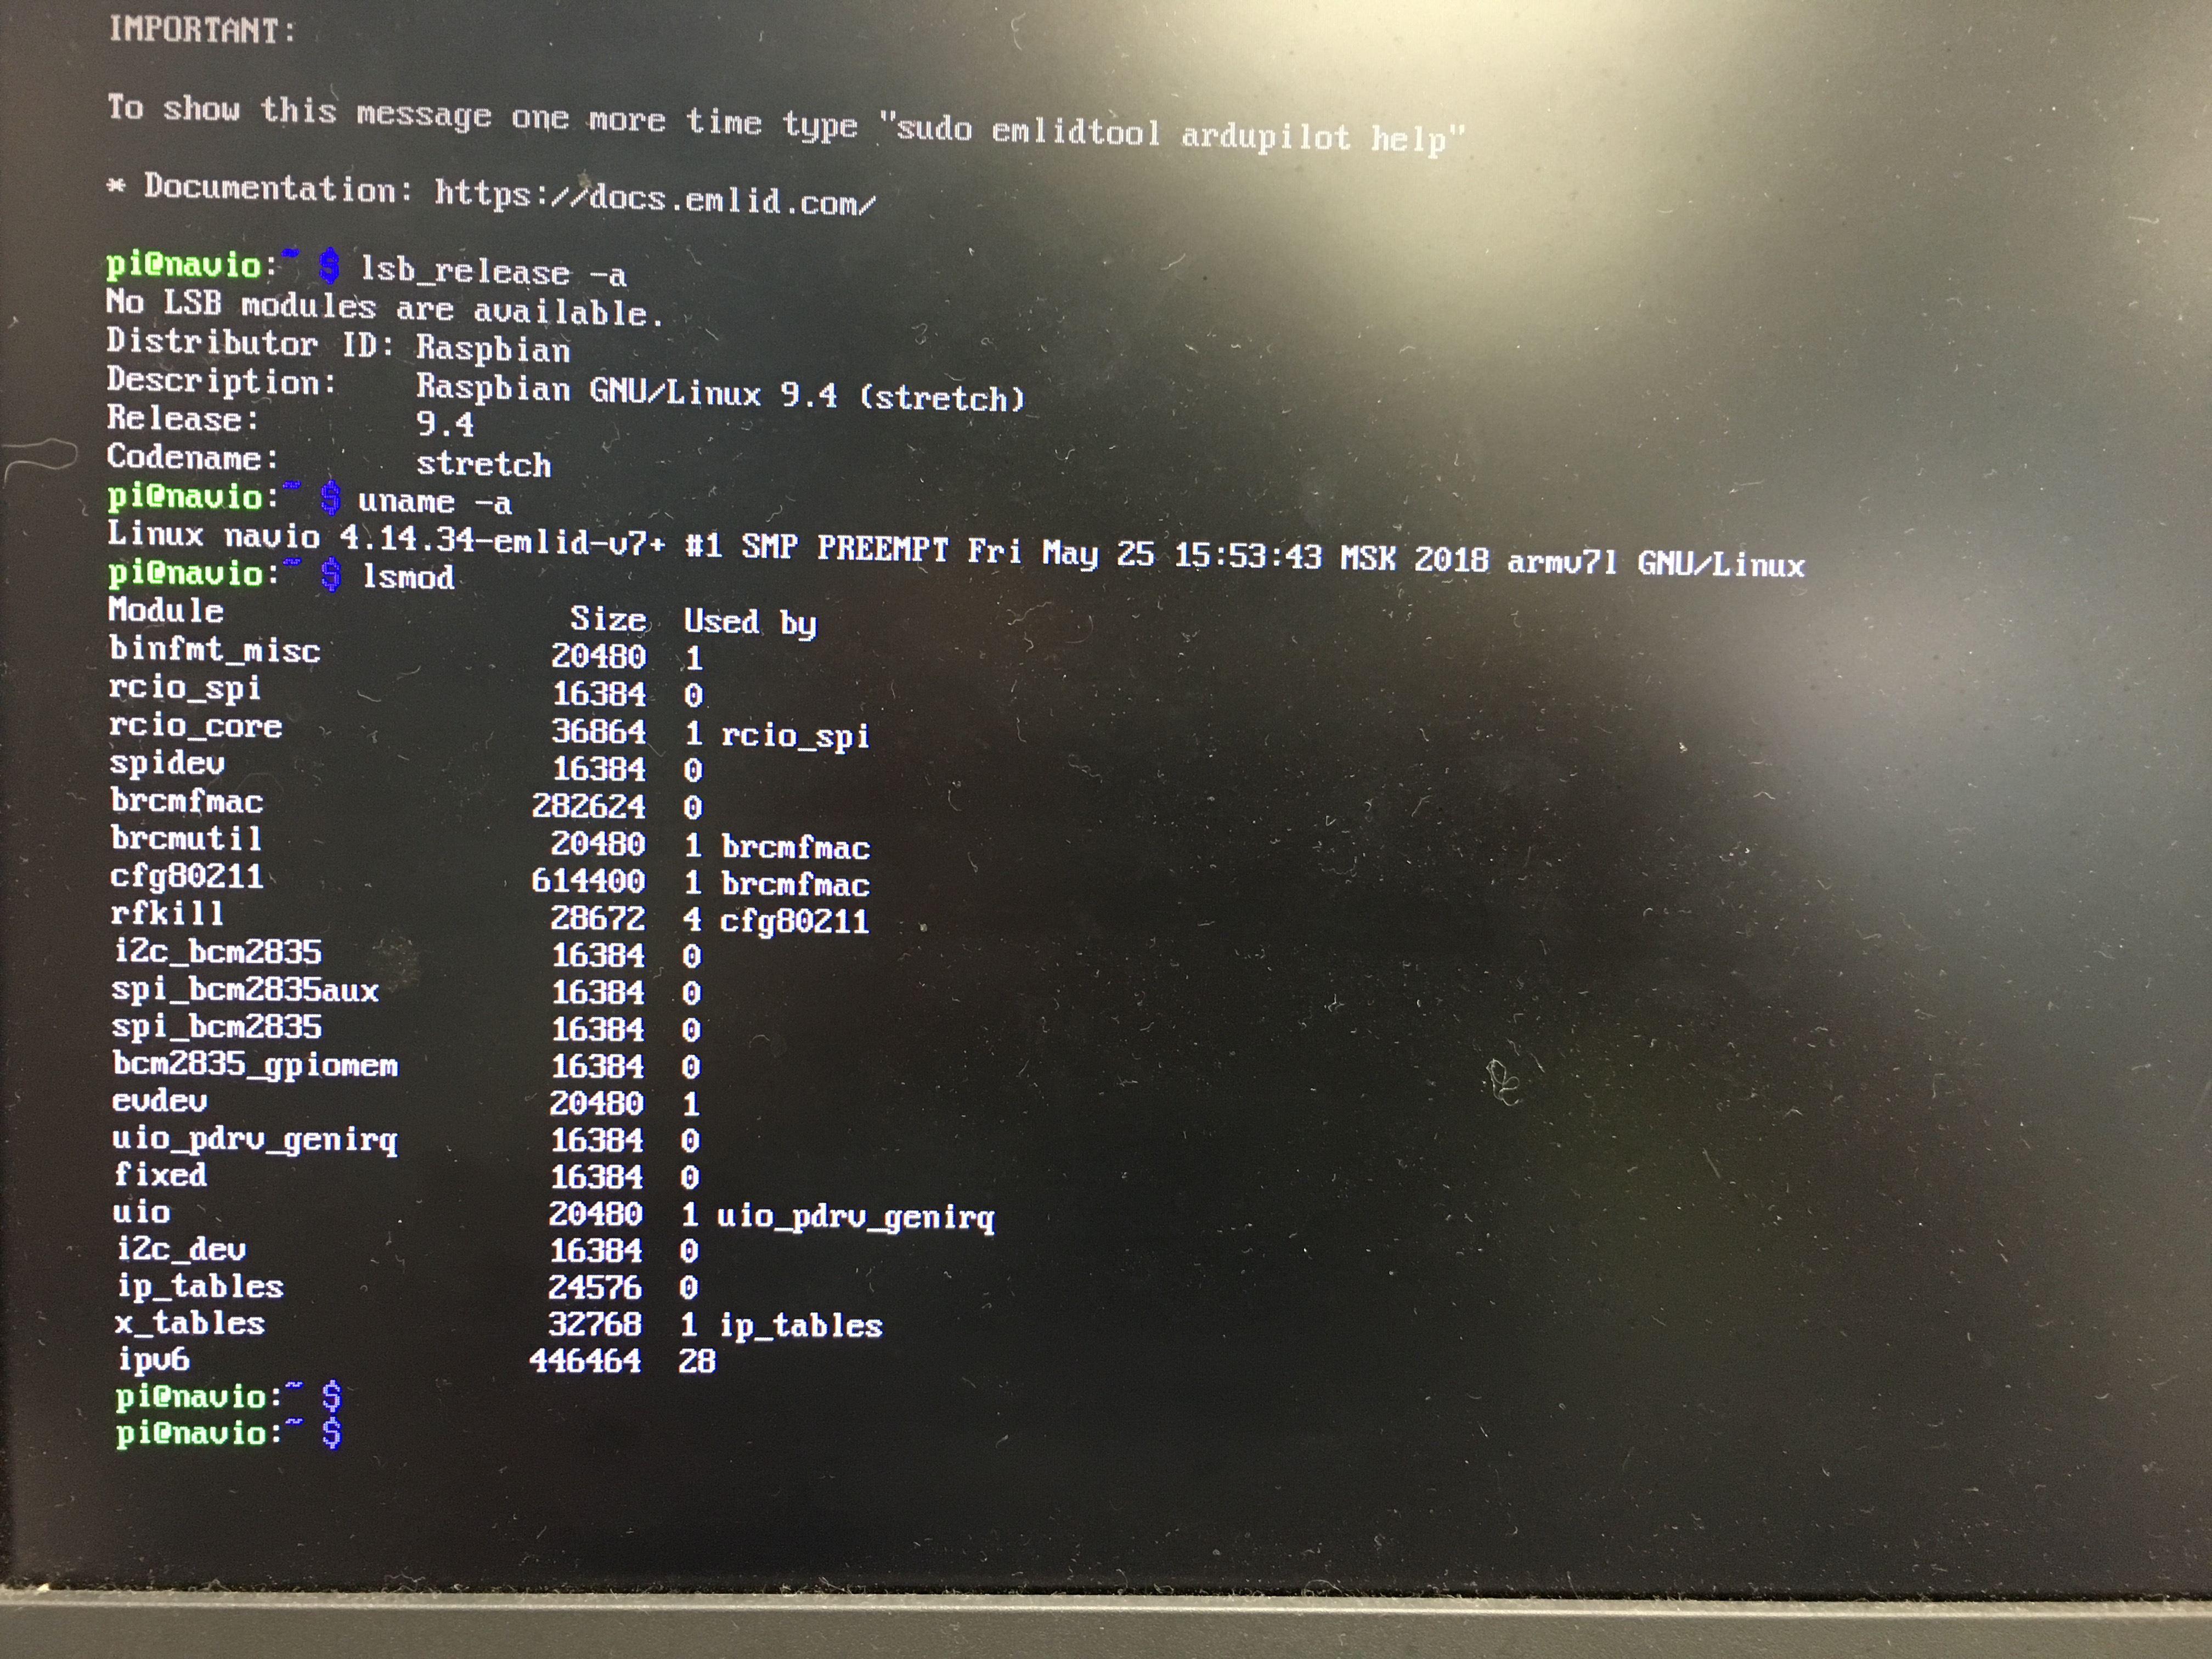 LinuxPWM_Sysfs:Unable to open file /sys/class/pwm/pwmchip0